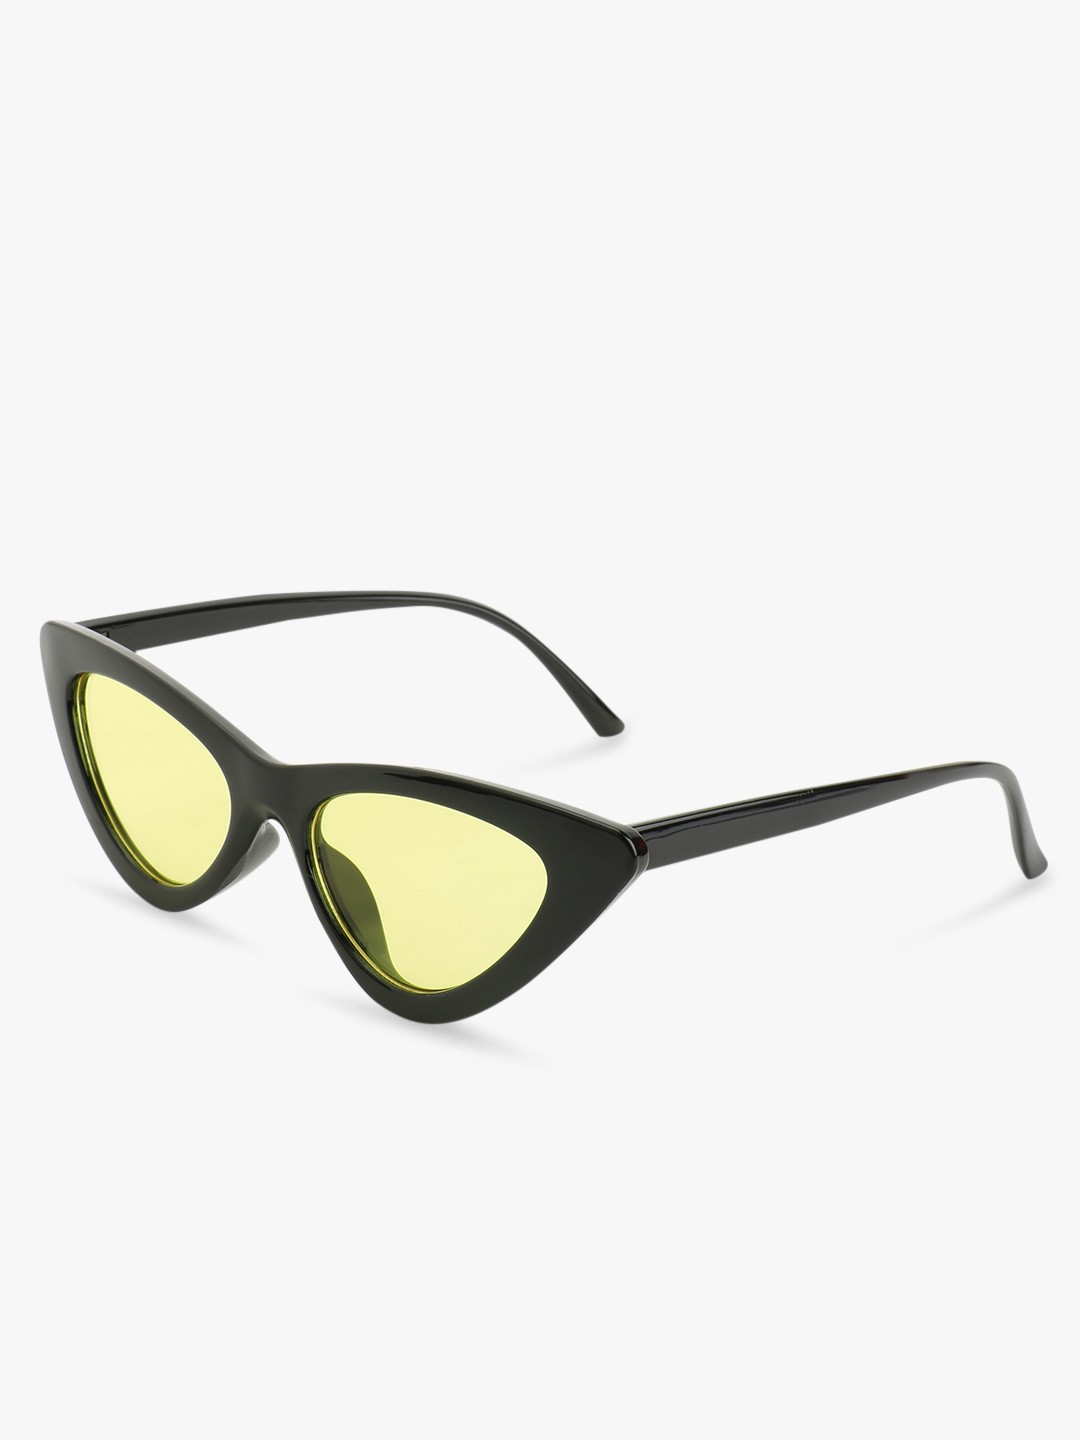 Sneak-a-Peek Black Tinted Lens Cateye Sunglasses 1